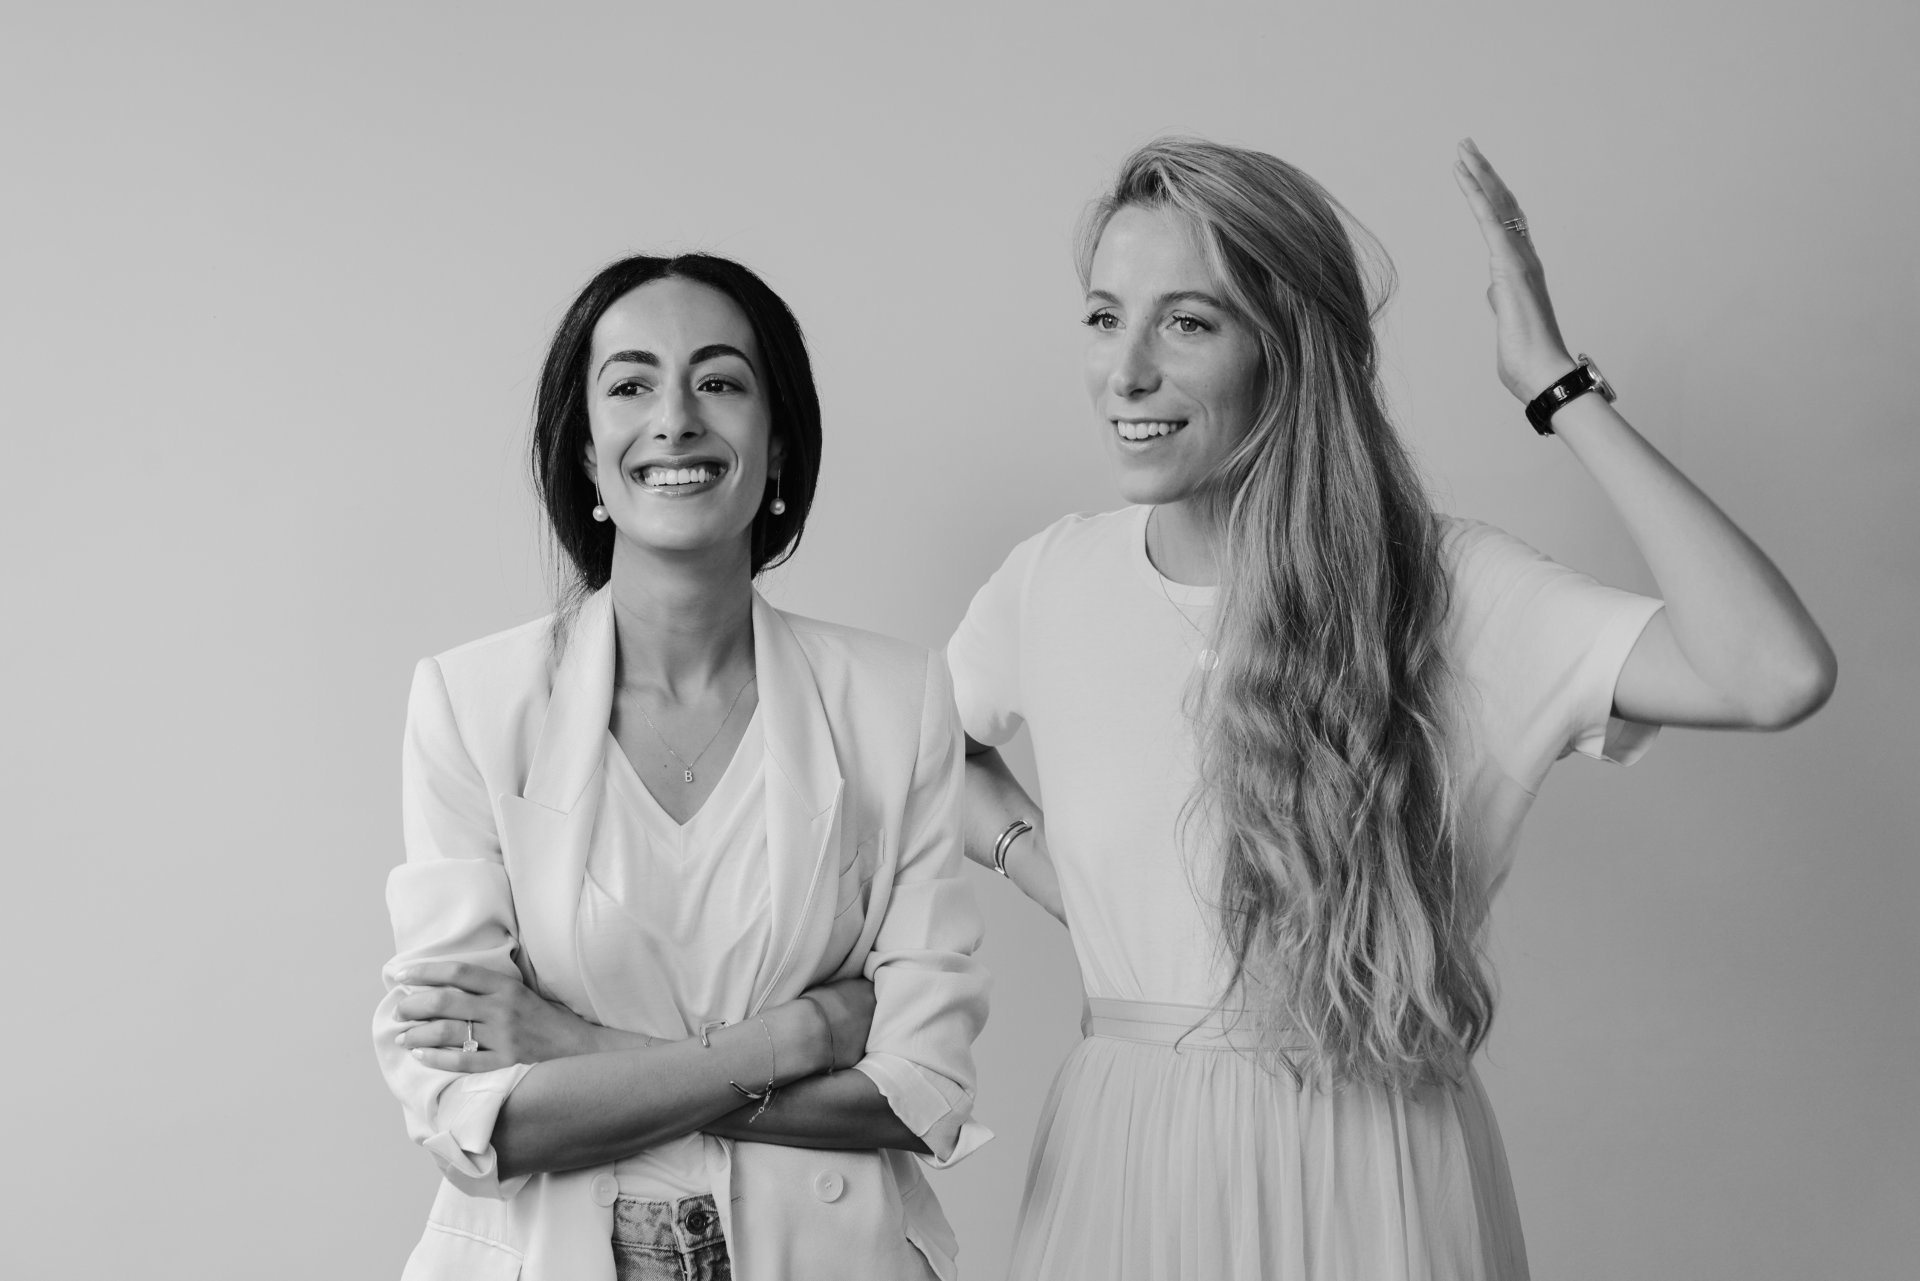 Let's talk business: AUrate New York founder Sophie Kahn over women empowerment